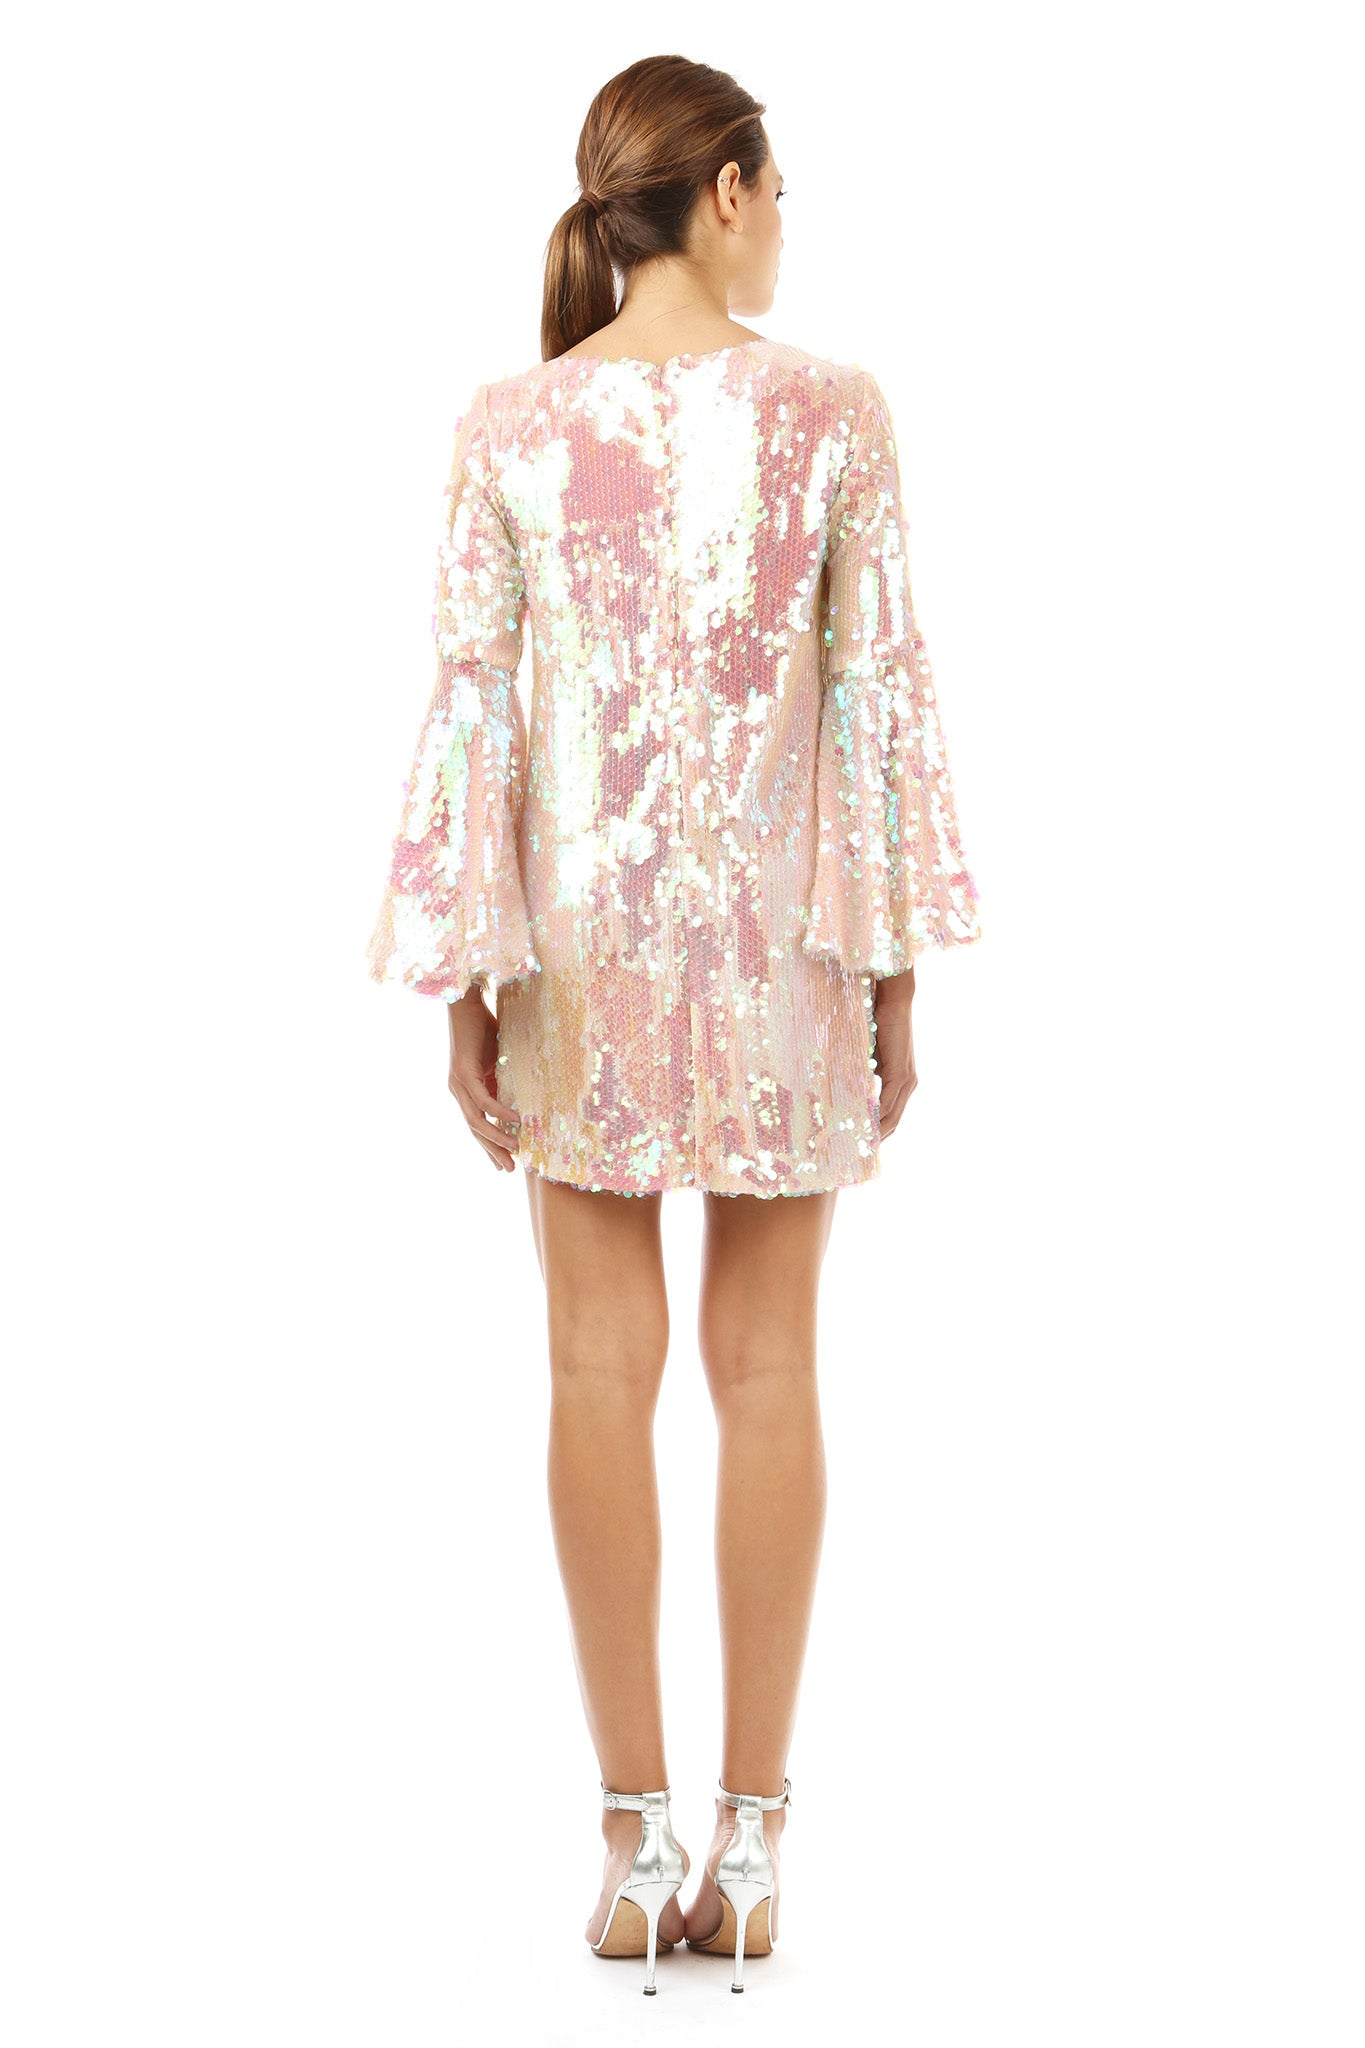 Jay Godfrey Pink Sequin Flare Dress with Bell Sleeves - Back View